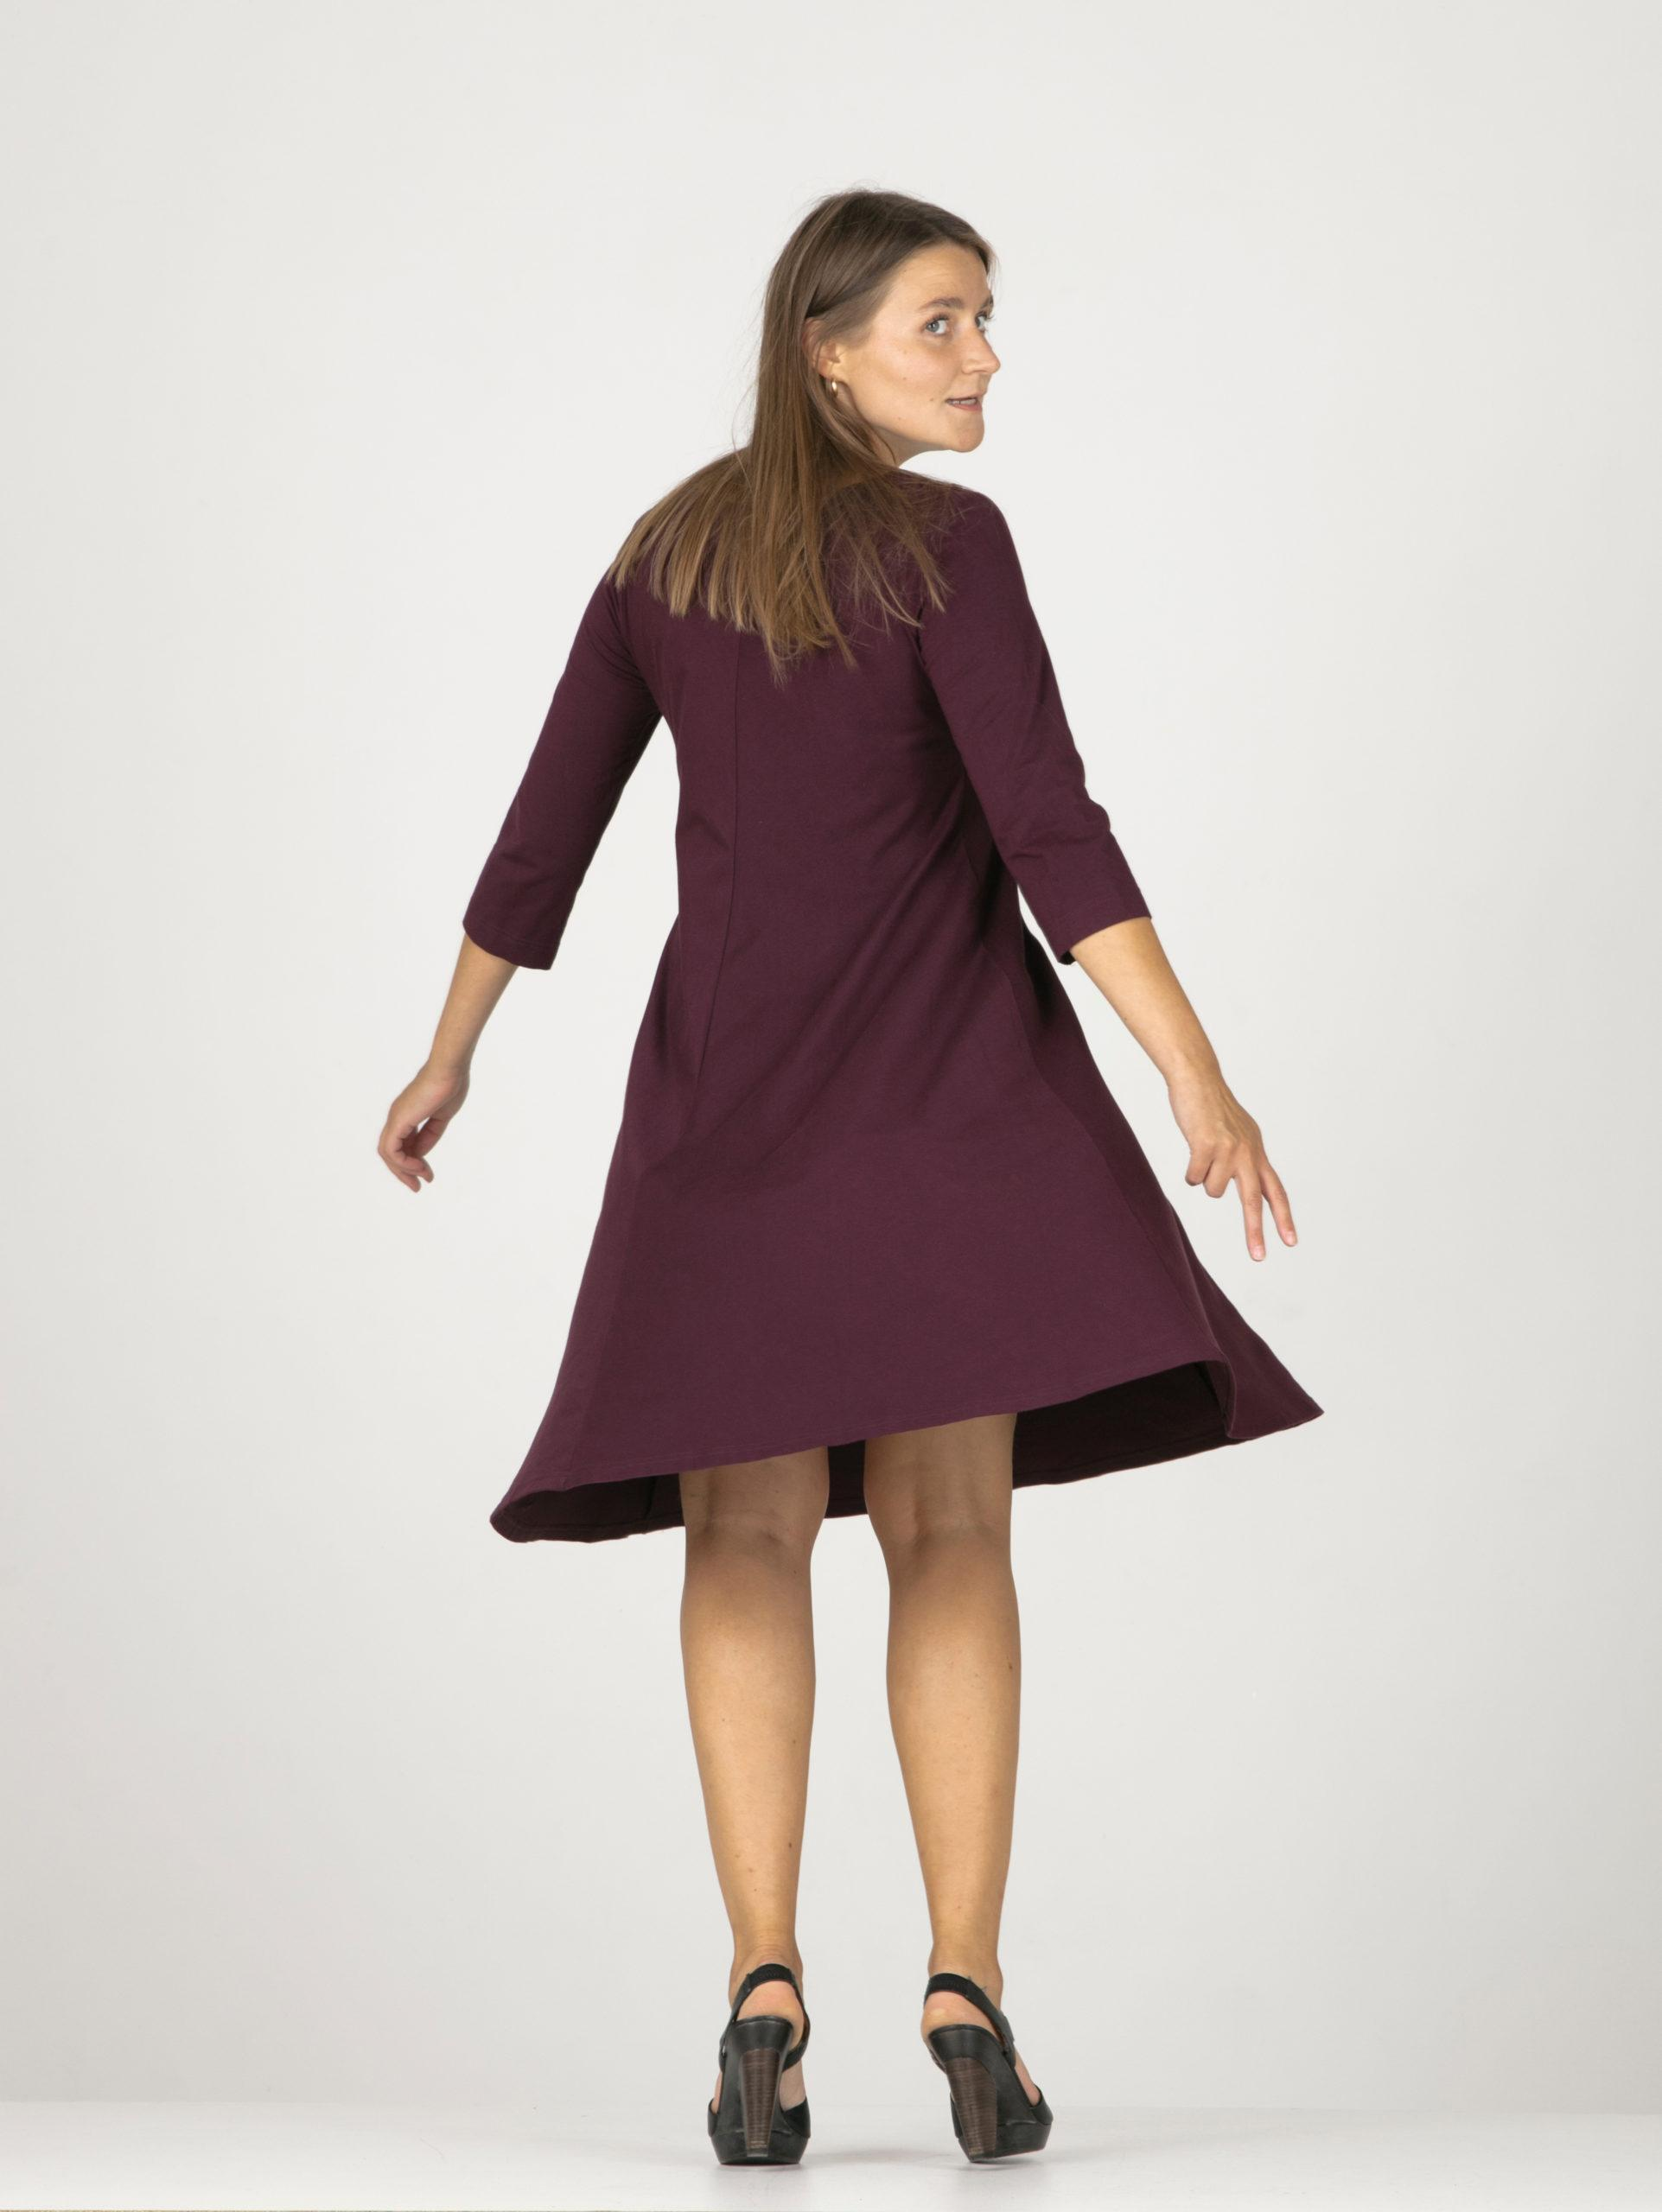 AR 24 Wide dress with 3/4 sleeves